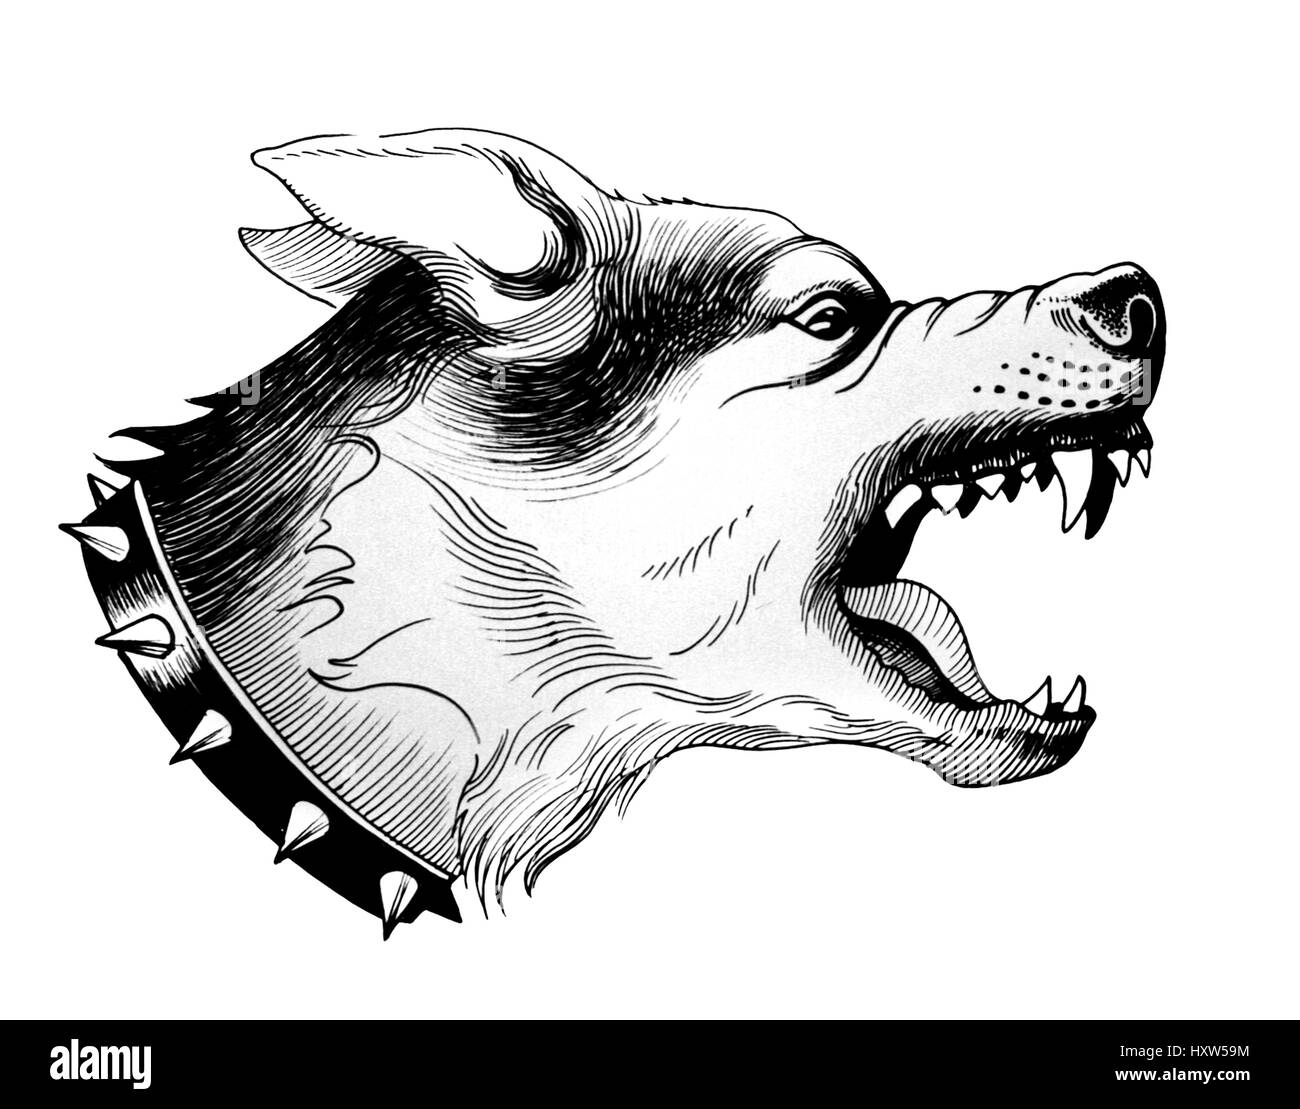 Aggressive Dog Black And White Stock Photos Images Alamy Mad Wiring Diagram Angry Image